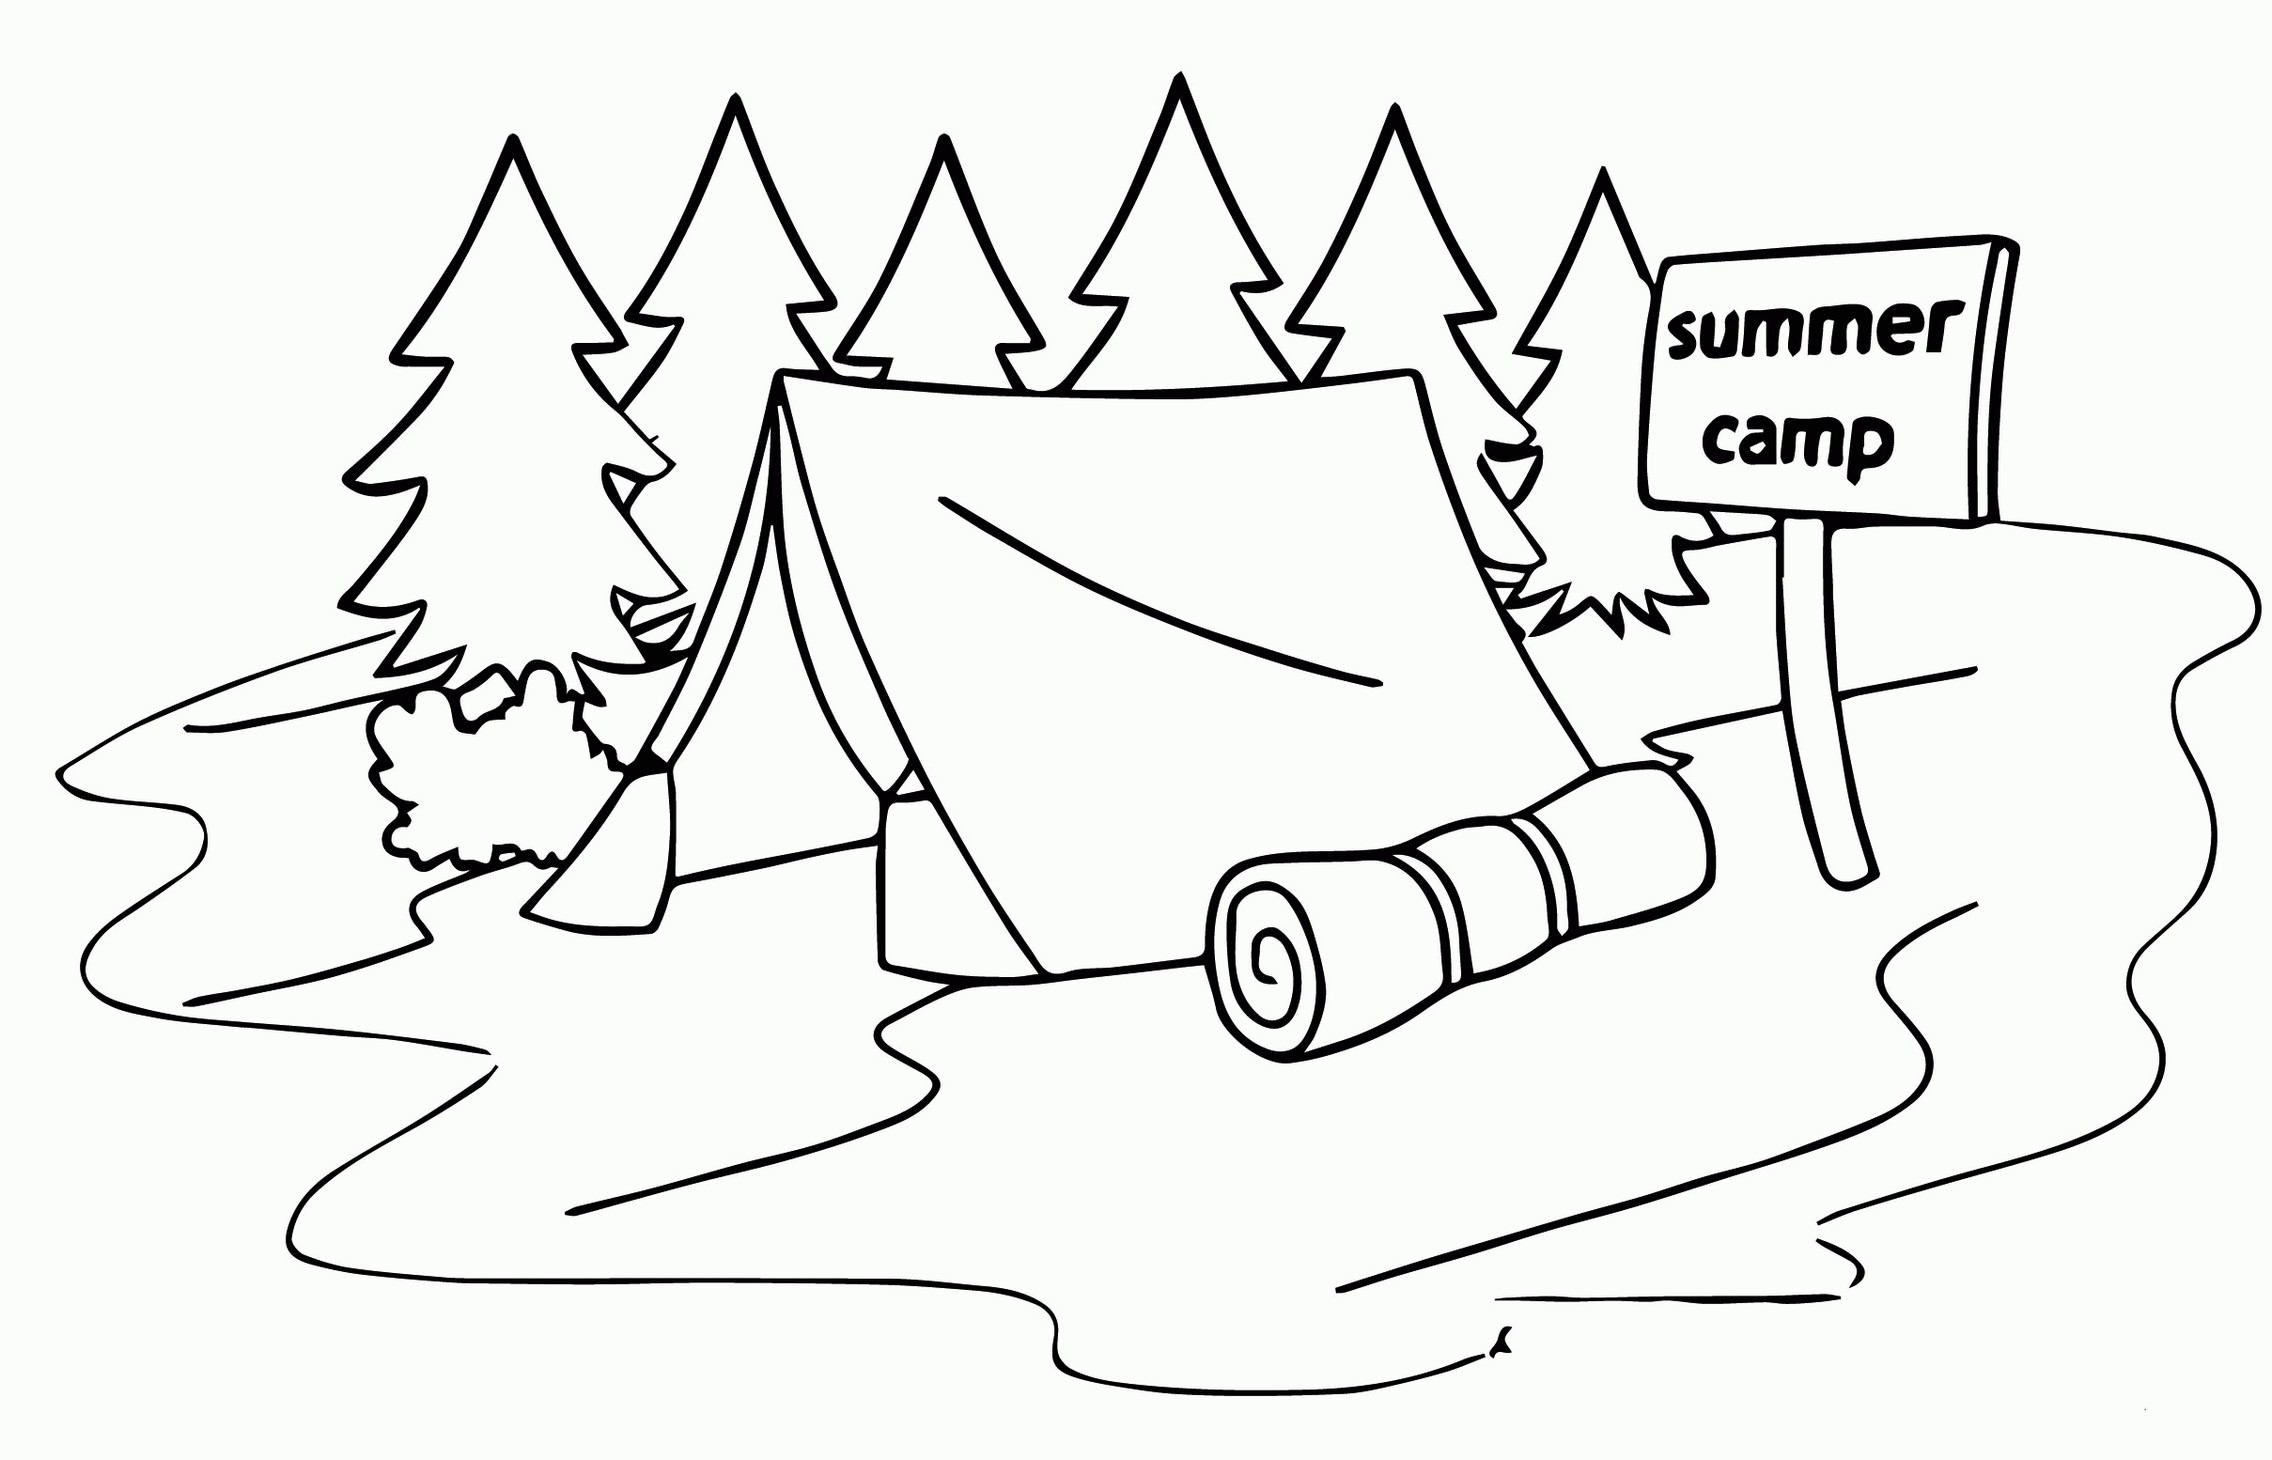 Summer Camp Tent Coloring Page For Kids